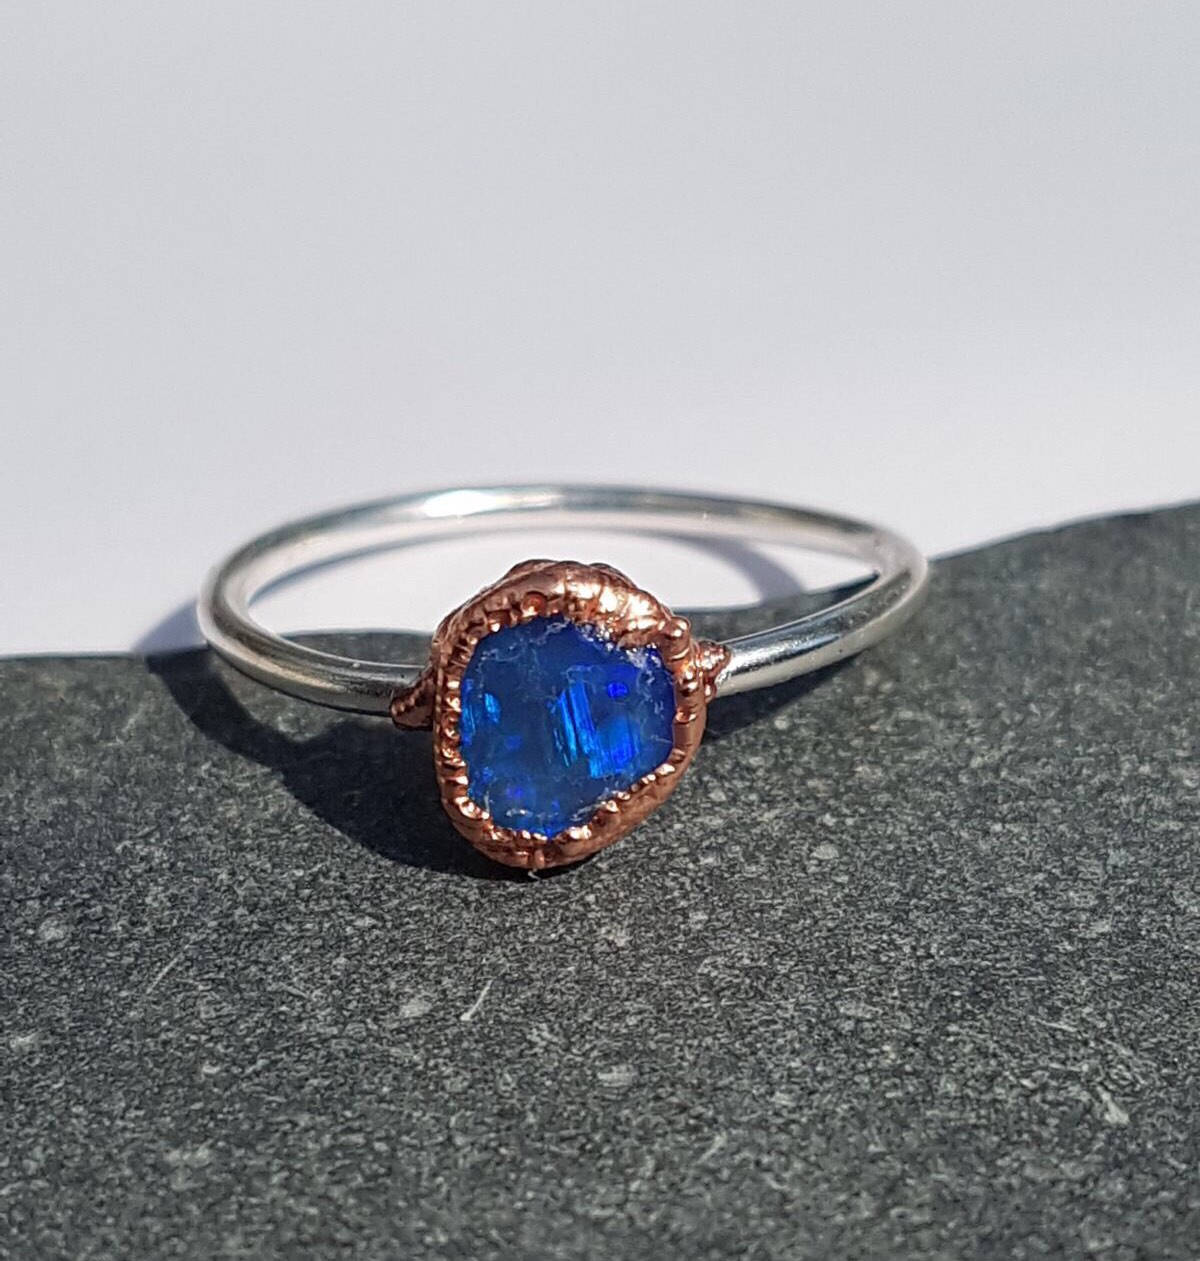 Lightning Ridge Hand Cut Natural Opal, Sterling Silver & Copper, Ring size P/Q US Ring size 8. - Glitter and Gem Jewellery